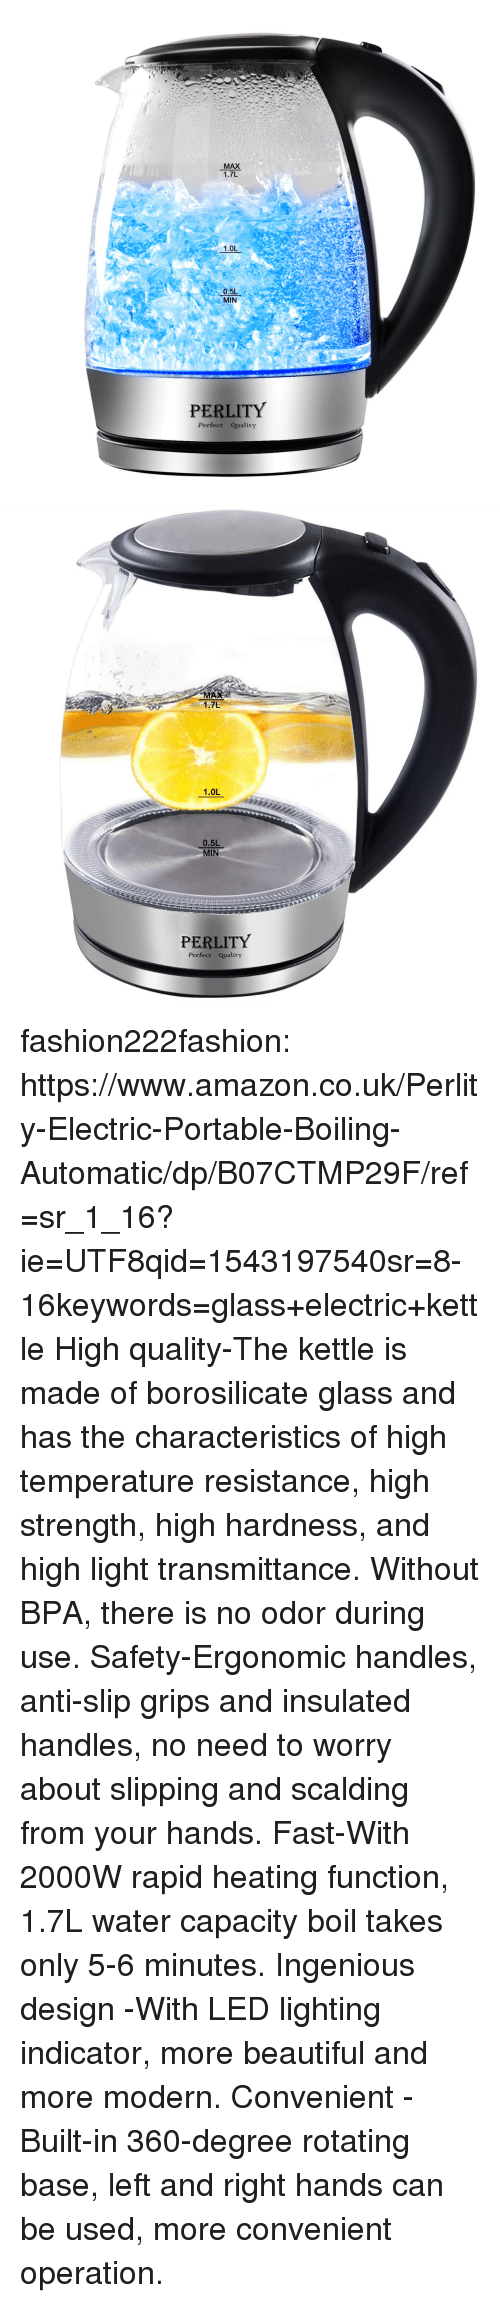 Amazon, Beautiful, and Tumblr: MAX  1.7L  1.0L  0.5L  MIN  PERLITY  Perfect Quality   MA  1.7L  1.0L  0.5L  MIN  PERLITY  Perfect Qualicy fashion222fashion: https://www.amazon.co.uk/Perlity-Electric-Portable-Boiling-Automatic/dp/B07CTMP29F/ref=sr_1_16?ie=UTF8qid=1543197540sr=8-16keywords=glass+electric+kettle   High quality-The kettle is made of borosilicate glass and has the characteristics of high temperature resistance, high strength, high hardness, and high light transmittance. Without BPA, there is no odor during use. Safety-Ergonomic handles, anti-slip grips and insulated handles, no need to worry about slipping and scalding from your hands. Fast-With 2000W rapid heating function, 1.7L water capacity boil takes only 5-6 minutes. Ingenious design -With LED lighting indicator, more beautiful and more modern. Convenient -Built-in 360-degree rotating base, left and right hands can be used, more convenient operation.